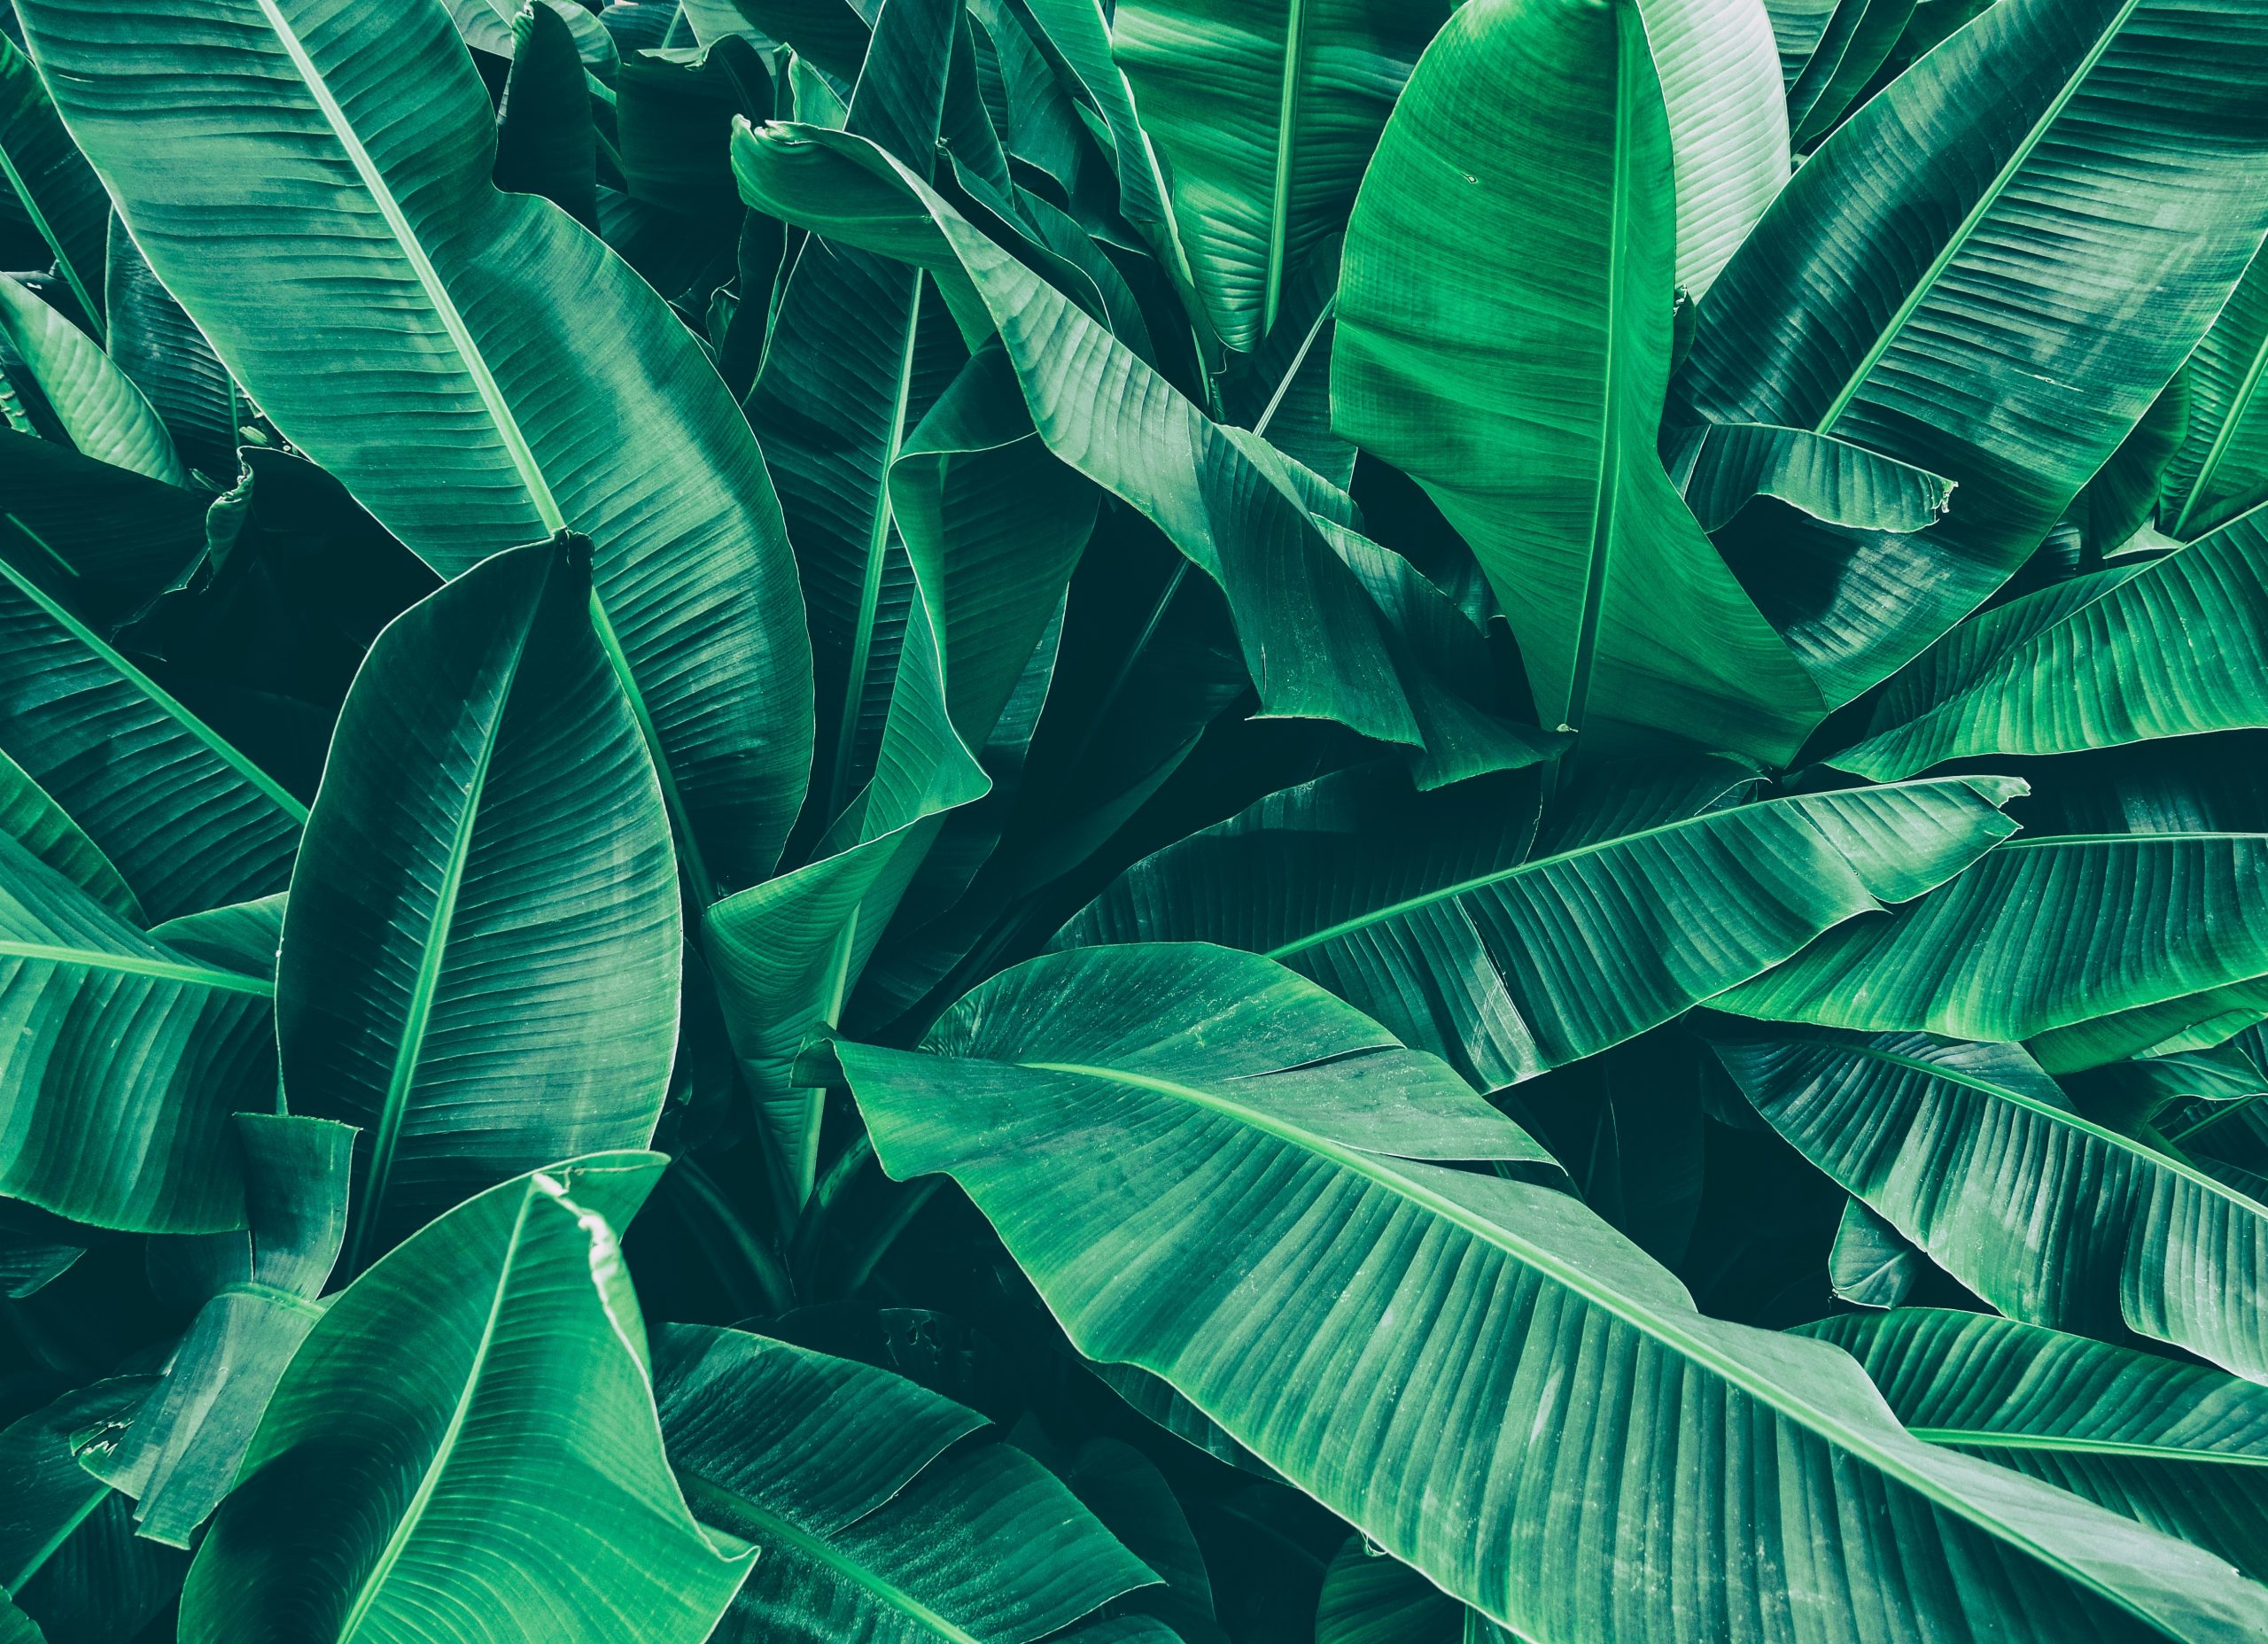 Tropical trees with thick leaves can thrive in higher CO2 conditions • Earth.com